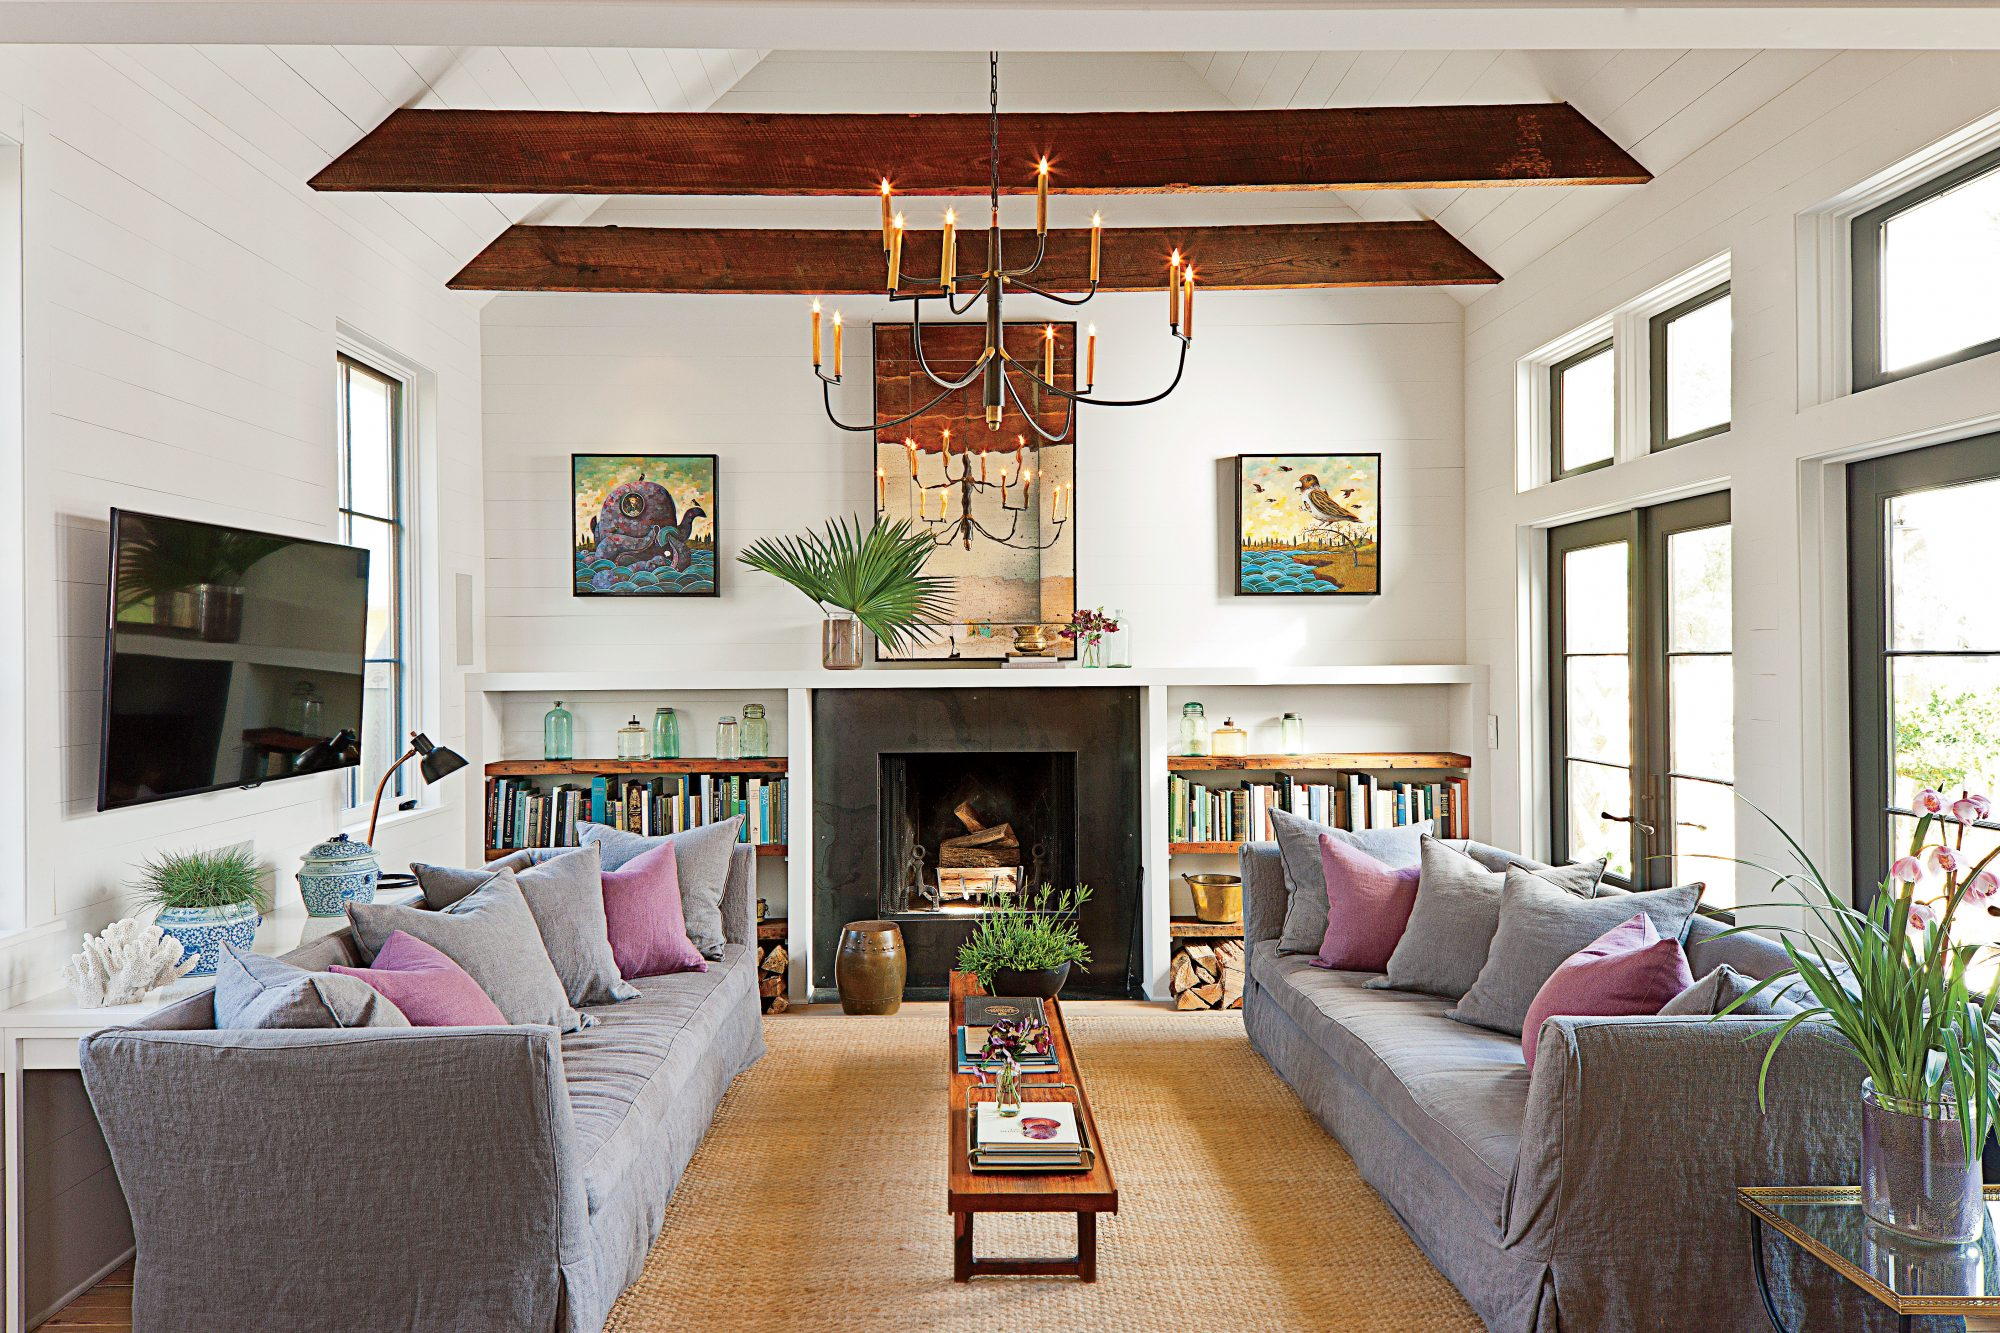 Captivating Inviting Family Room Design